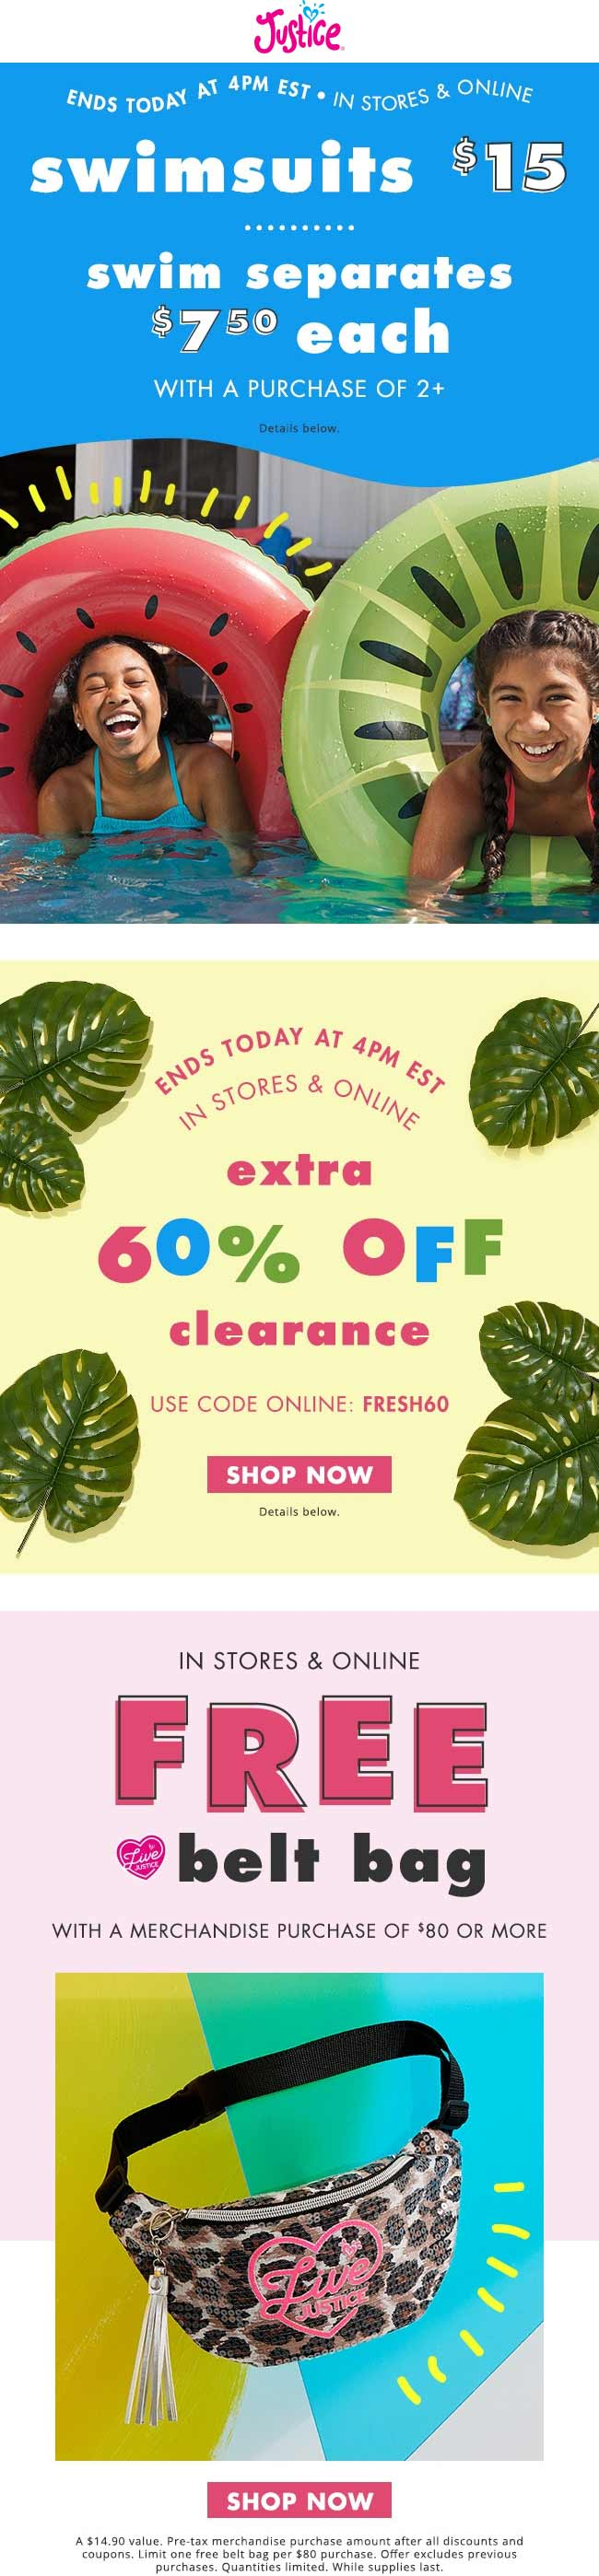 Justice Coupon November 2019 Extra 60% off clearance til 4p today at Justice, or online via promo code FRESH60